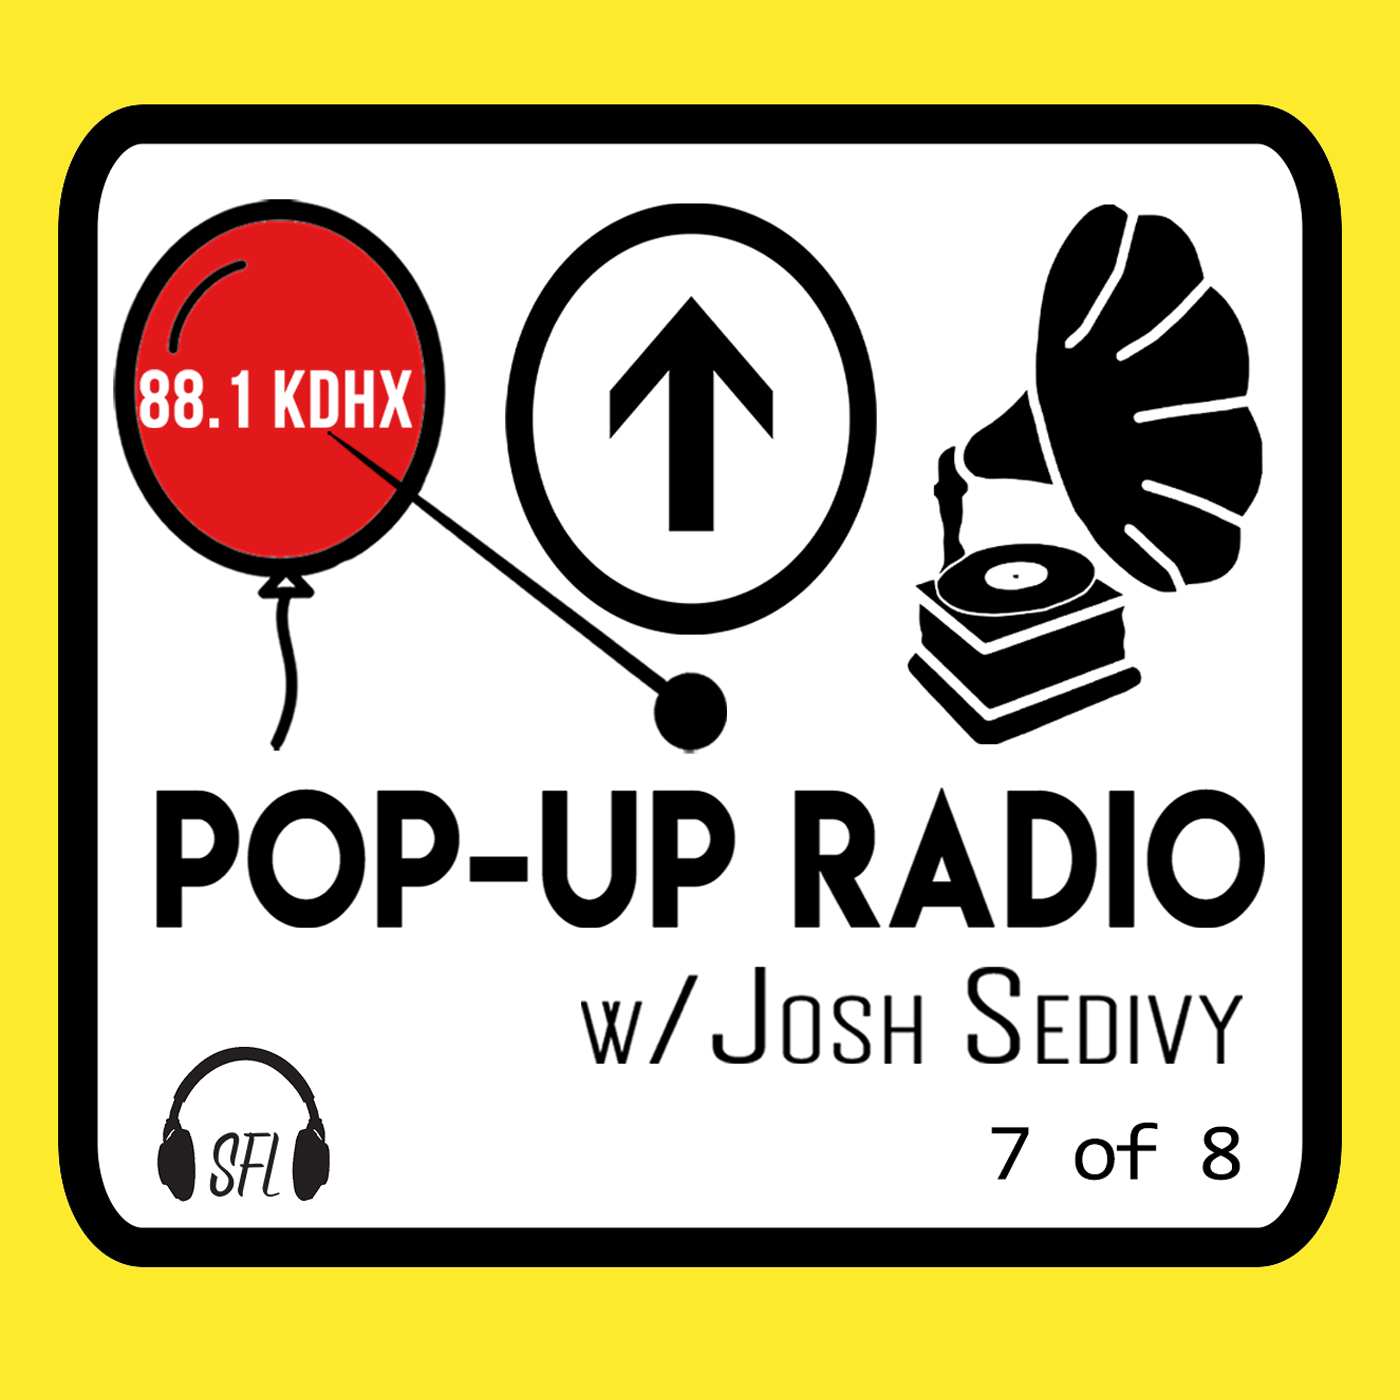 Pop-Up Radio on KDHX - Episode 7